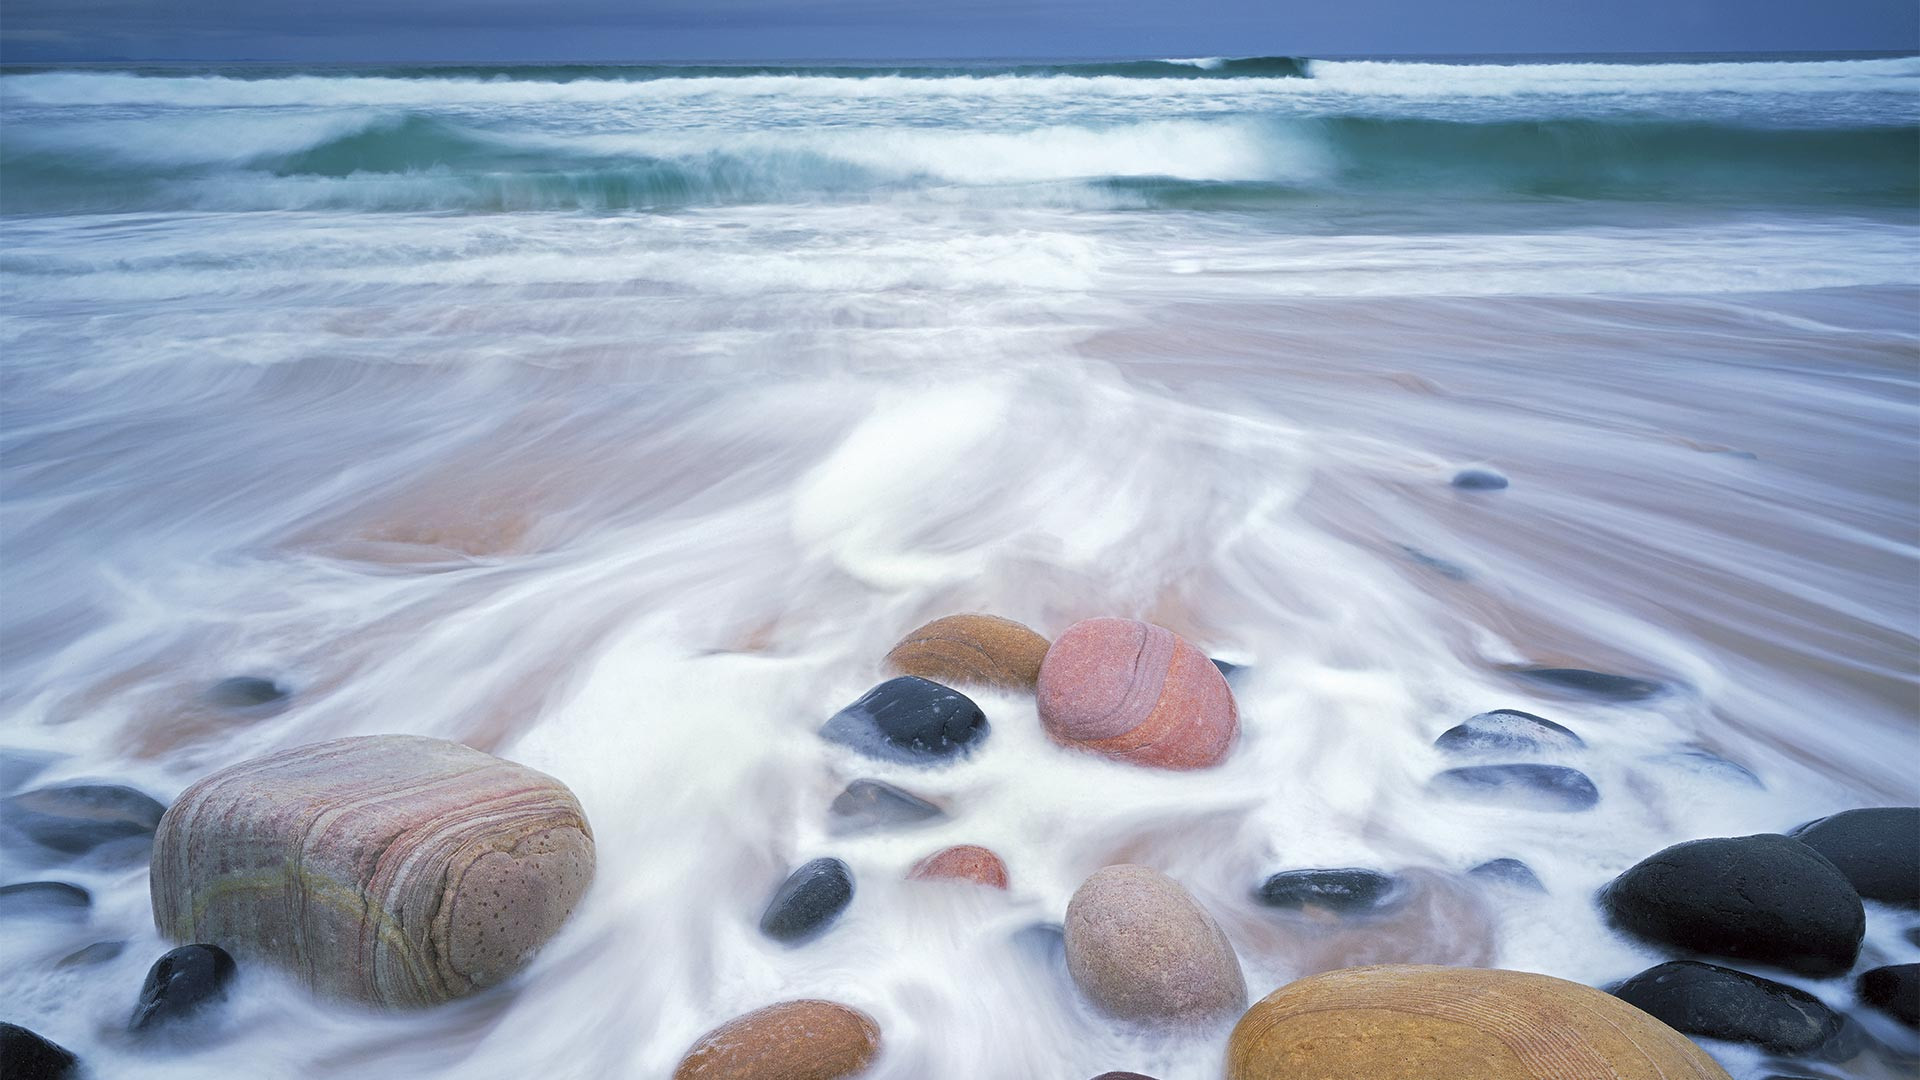 Boulders in the surf at Rackwick Bay, Orkney Islands, Scotland